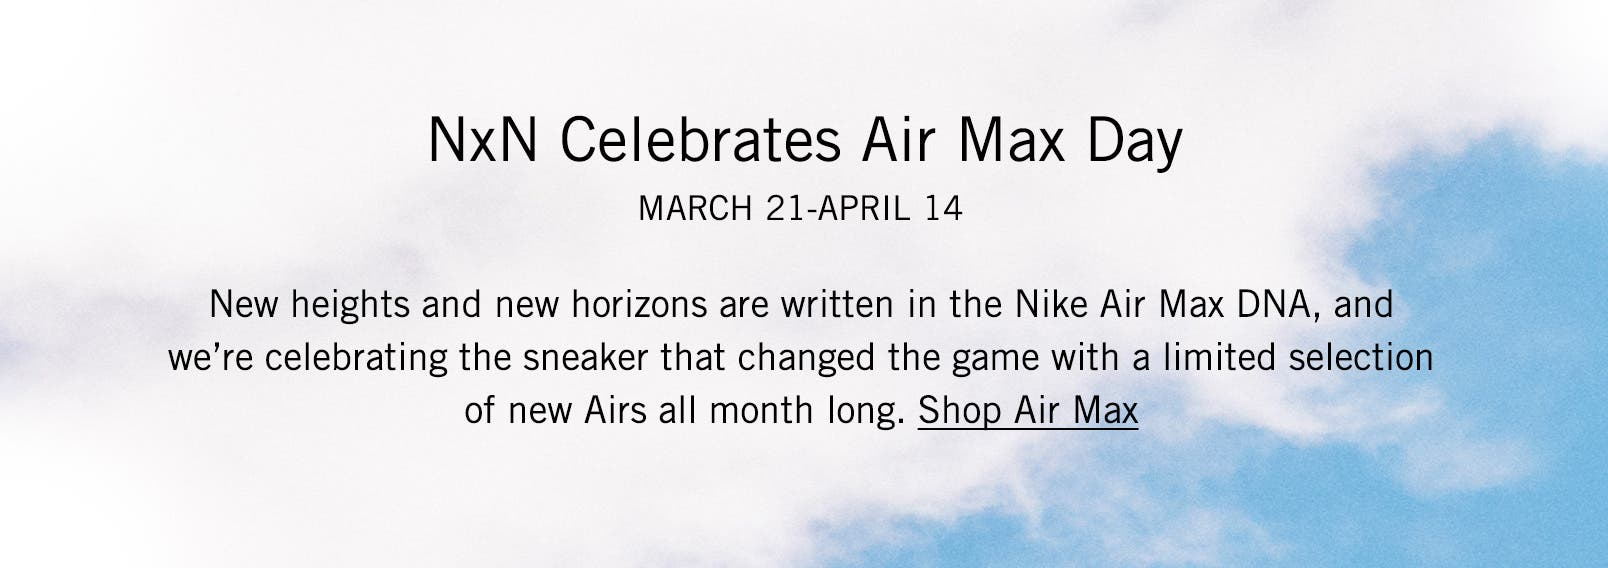 NxN Celebrates Air Max Day: March 21-April 14. New heights and new horizons are written in the Nike Air Max DNA, and we're celebrating the sneaker that changed the game with a limited selection of new Airs all month long.